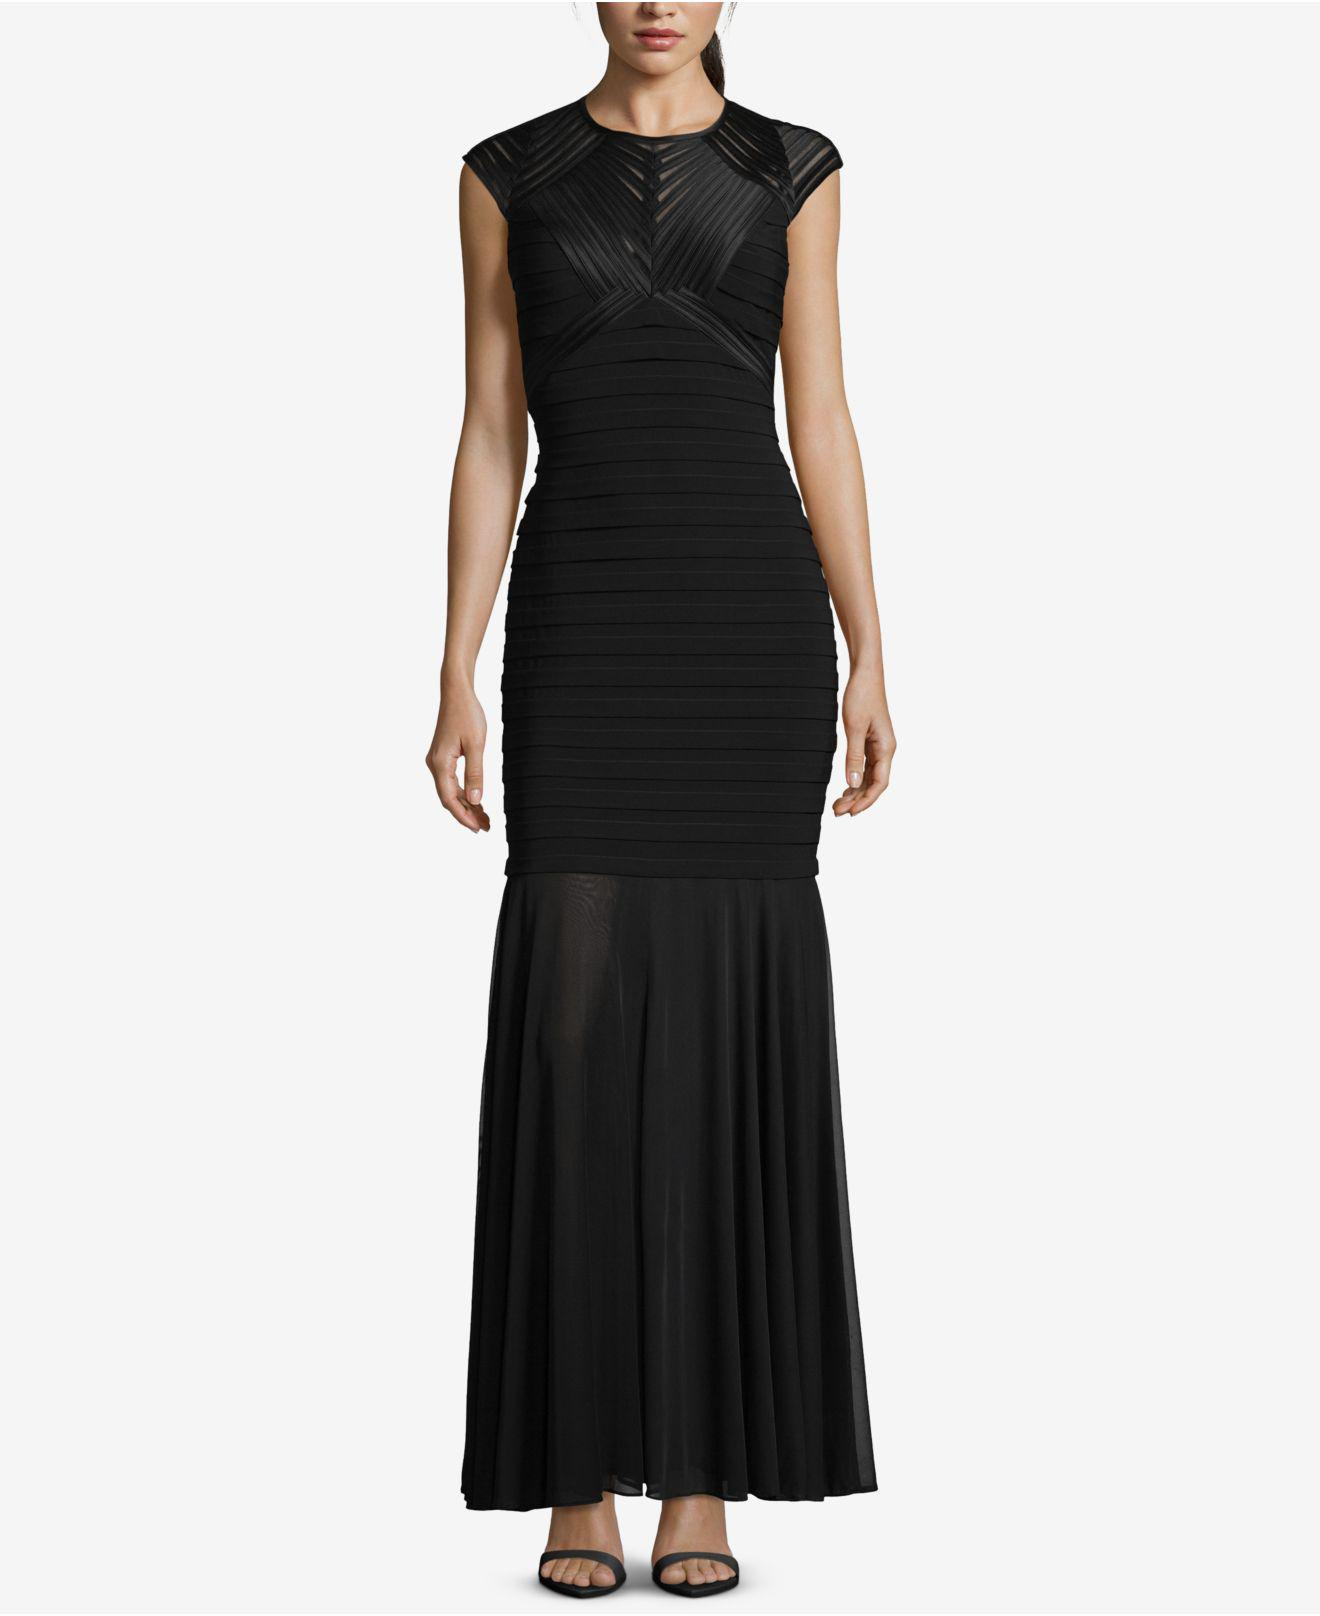 Lyst - Betsy & Adam Petite Illusion Bandage Gown in Black